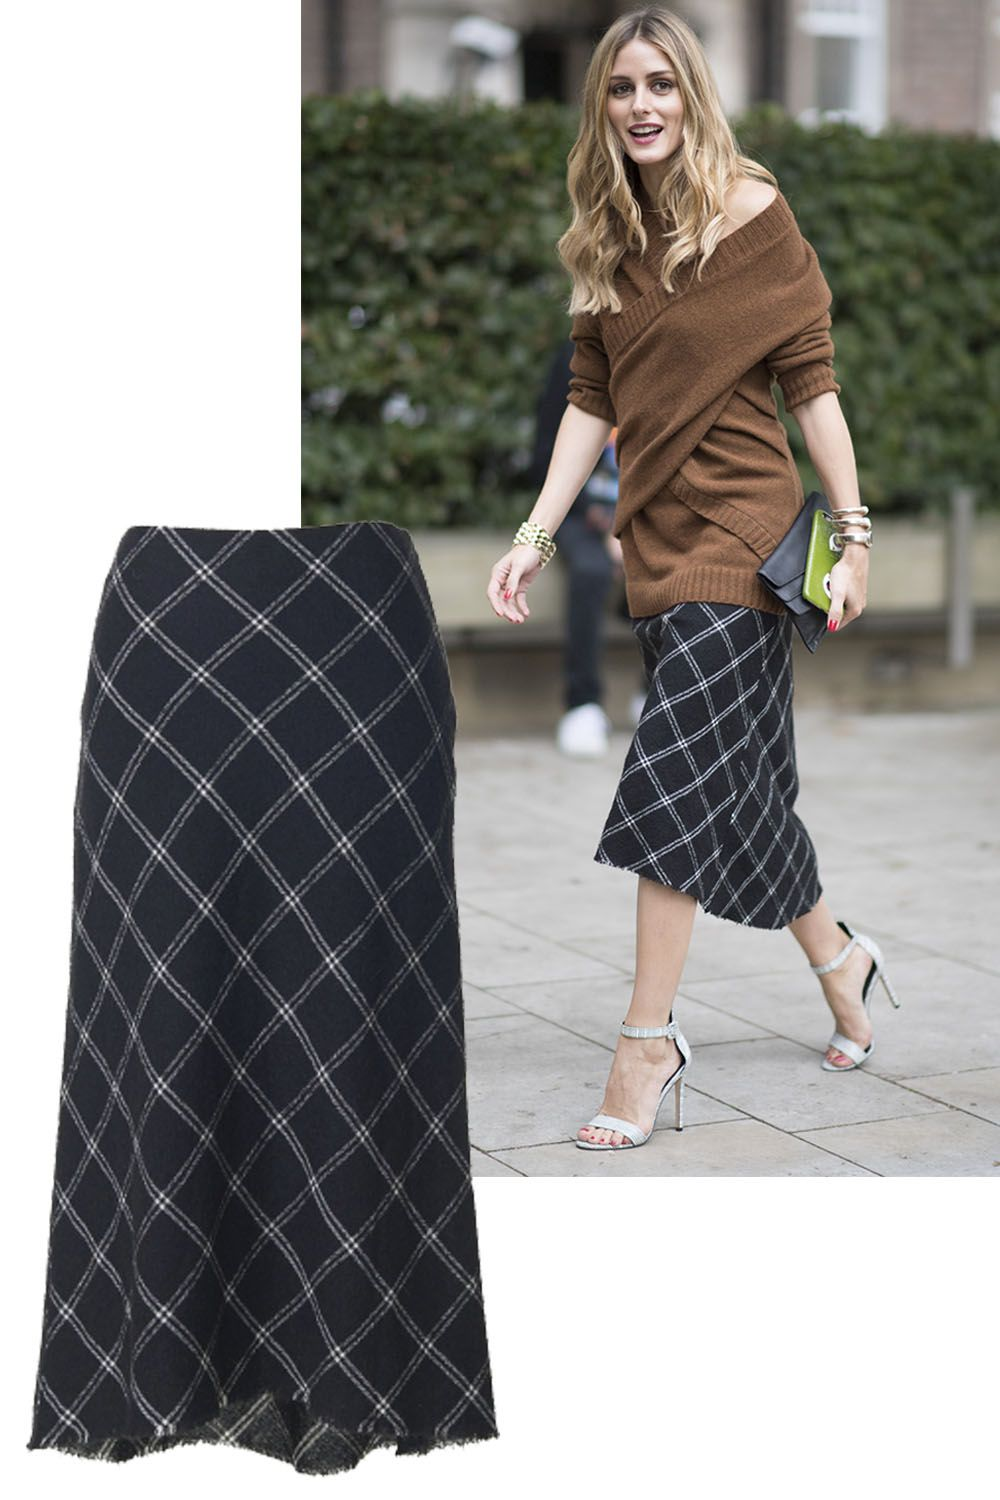 "<p>Olivia Palermo gave a girly take on grunge, and we're taking notes. </p><p><em data-verified=""redactor"" data-redactor-tag=""em"">Tibi skirt, $495, <strong data-redactor-tag=""strong"" data-verified=""redactor""><a href=""https://shop.harpersbazaar.com/designers/t/tibi/salome-plaid-bias-dress-9513.html"" target=""_blank"">shopBAZAAR.com</a></strong> (similar style). </em></p>"